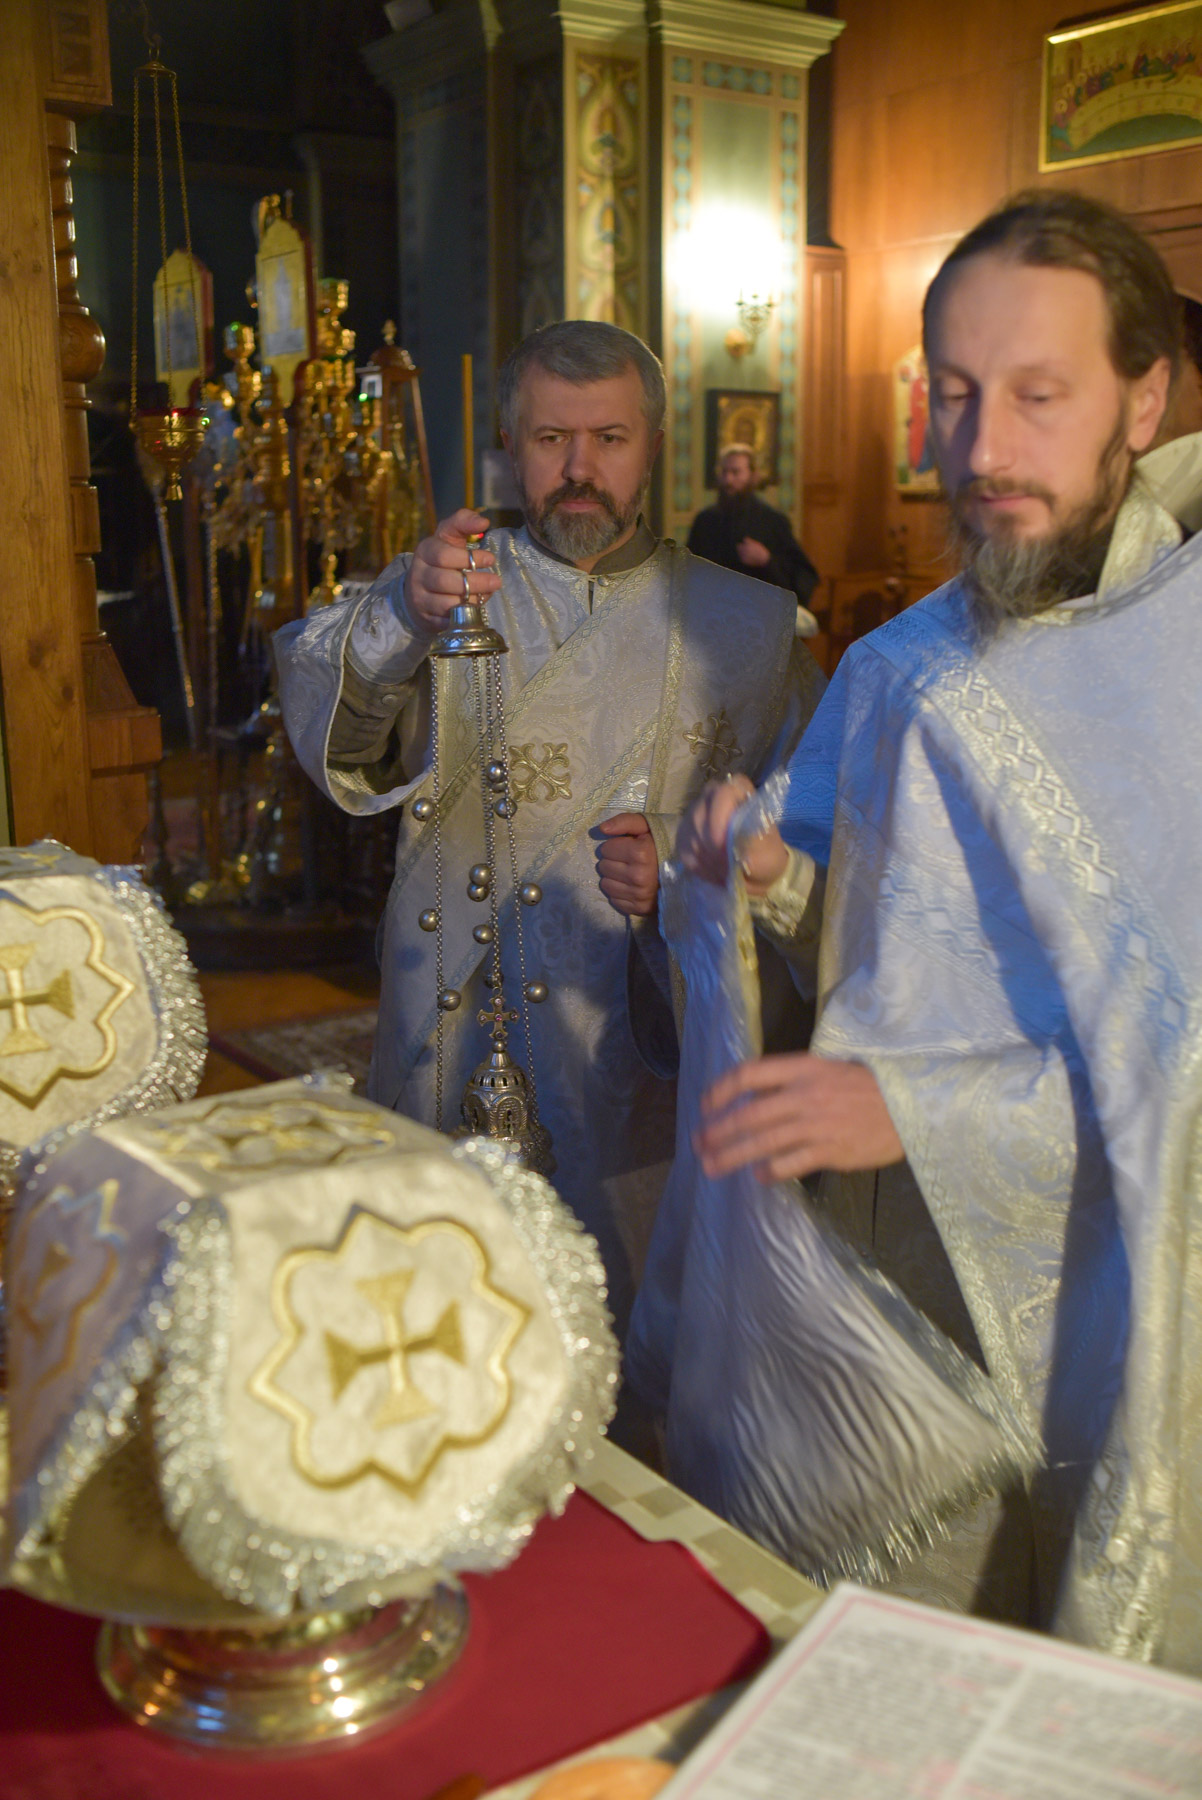 photos of orthodox christmas 0004 1